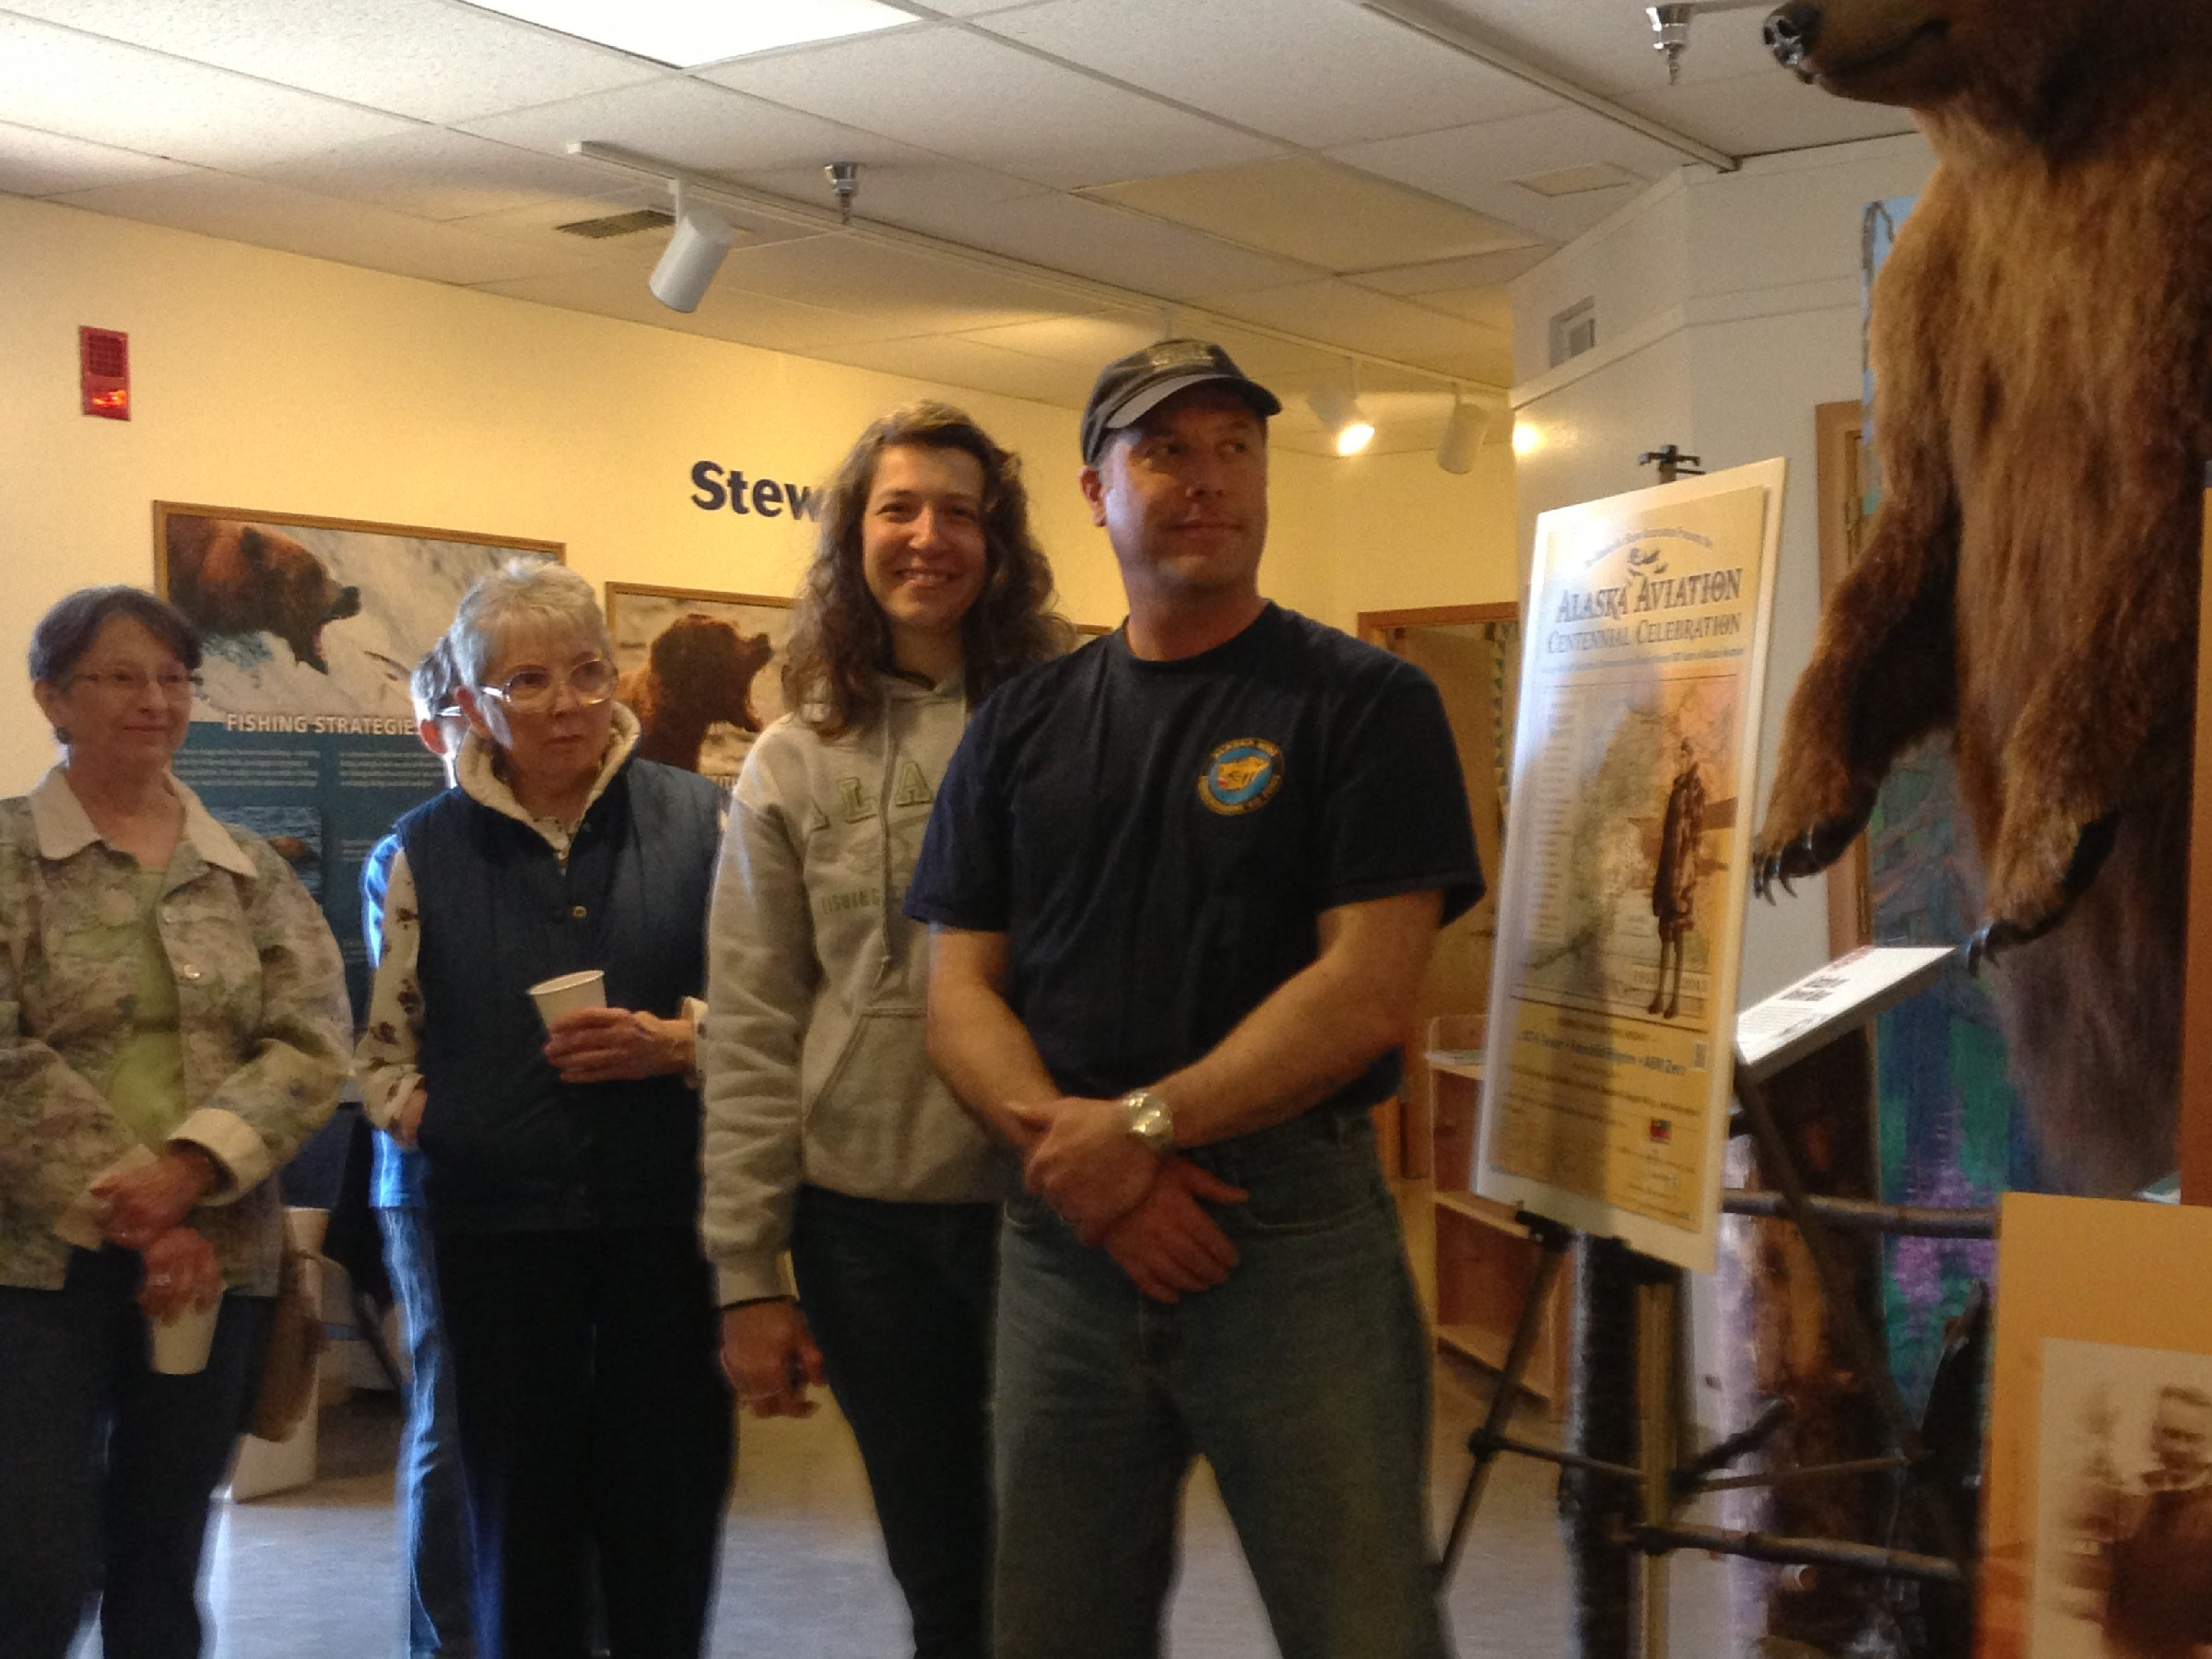 Pilot Jeff Sever and wife Stacey at the Pratt Museum with guests